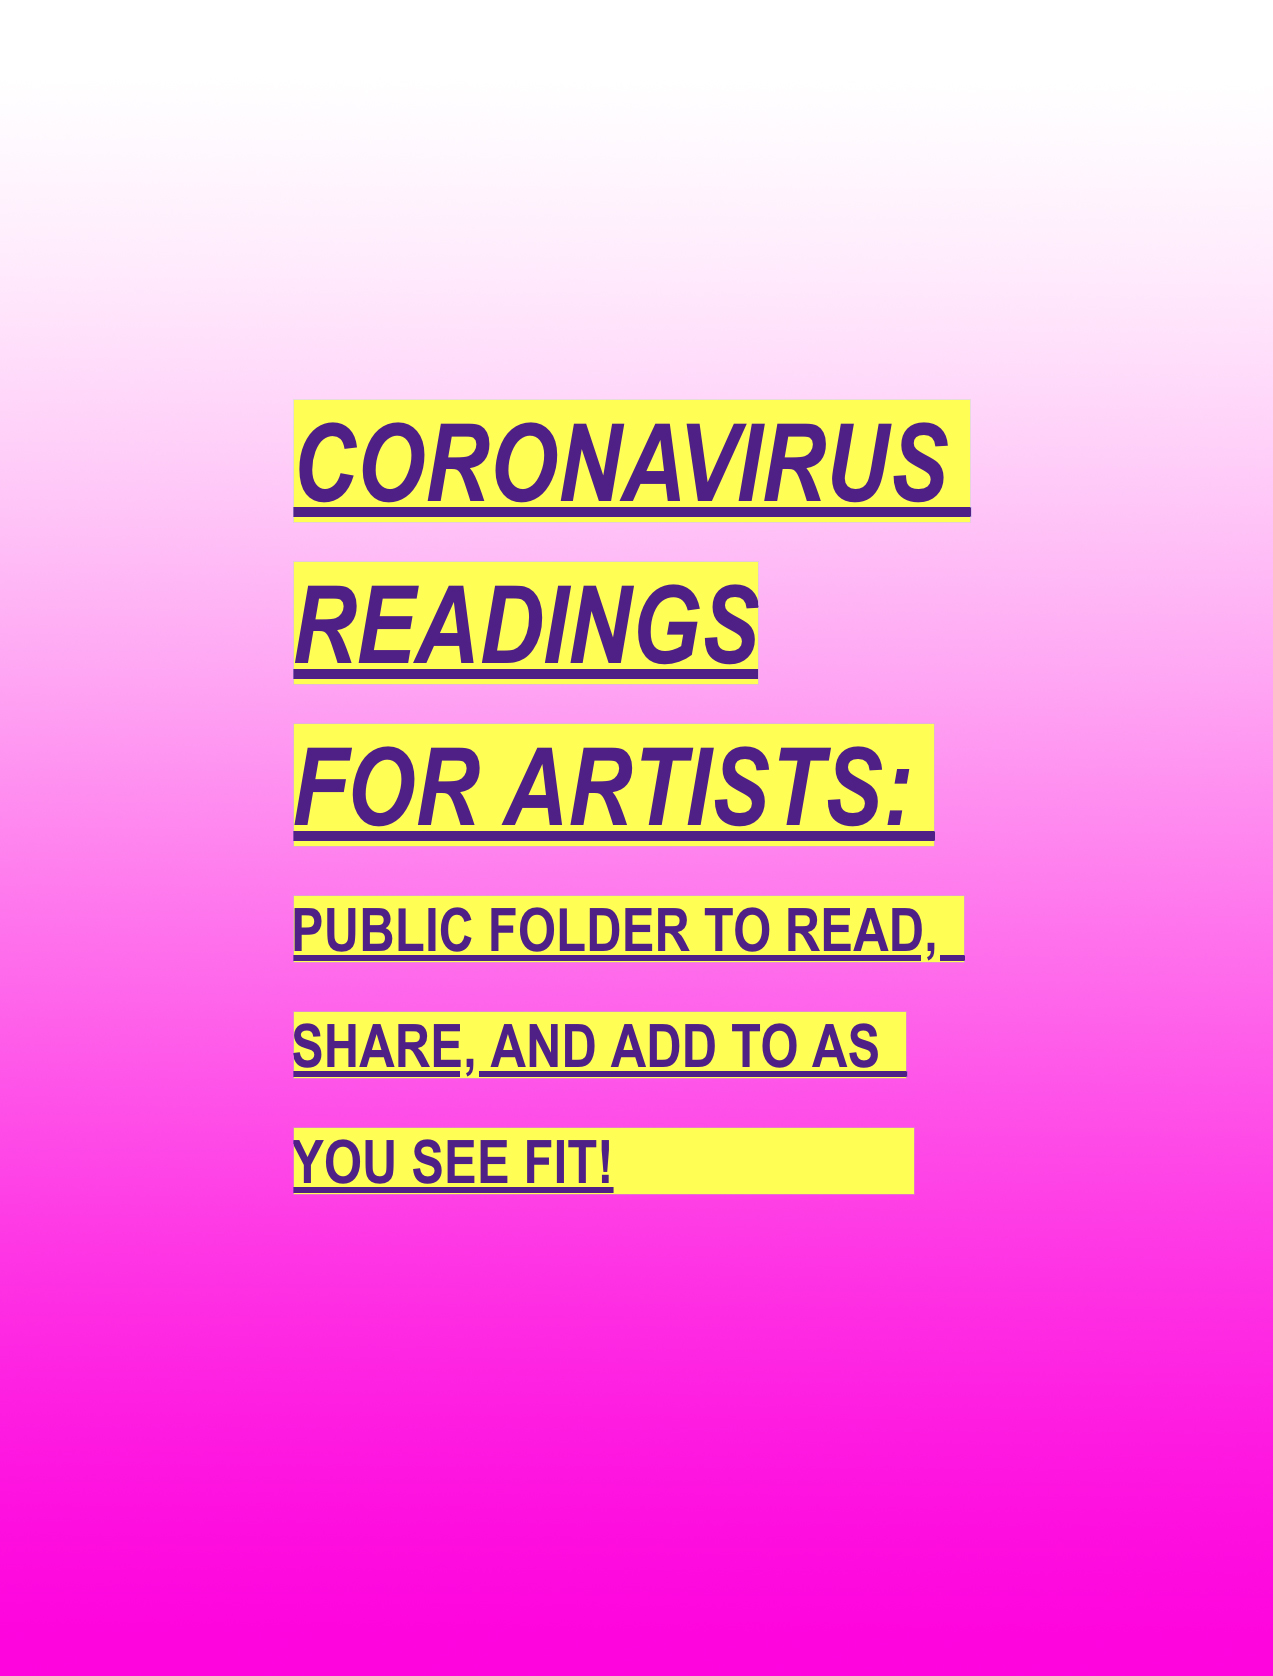 Coronavirus Readings for Artists PUBLIC FOLDER created 3/22/20